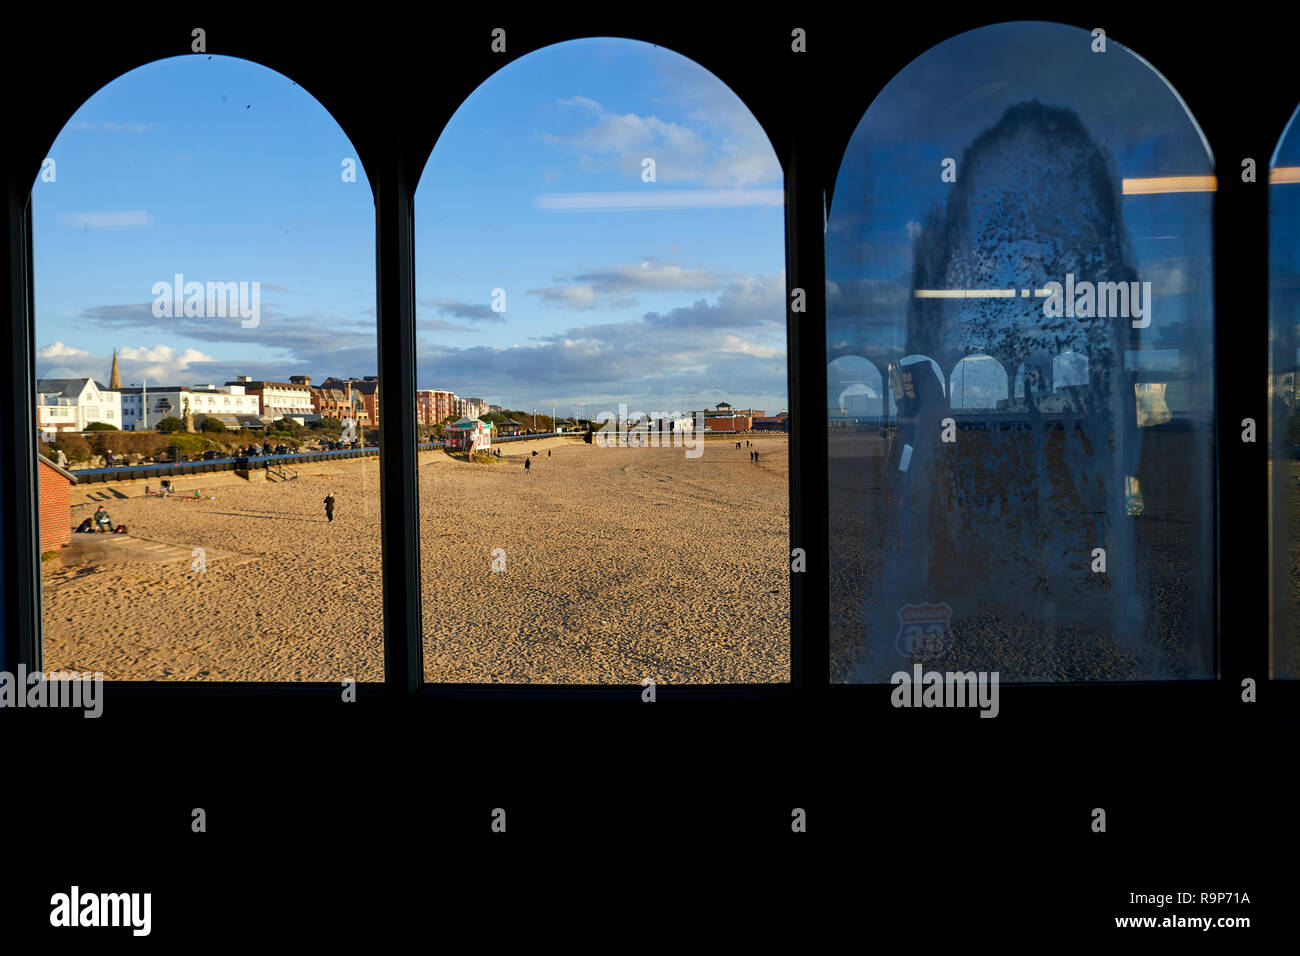 Lytham Saint Annes Lancashire, seafront waterfront promenade seaside resort on the Irish Sea coast of England,  view from Pier - Stock Image